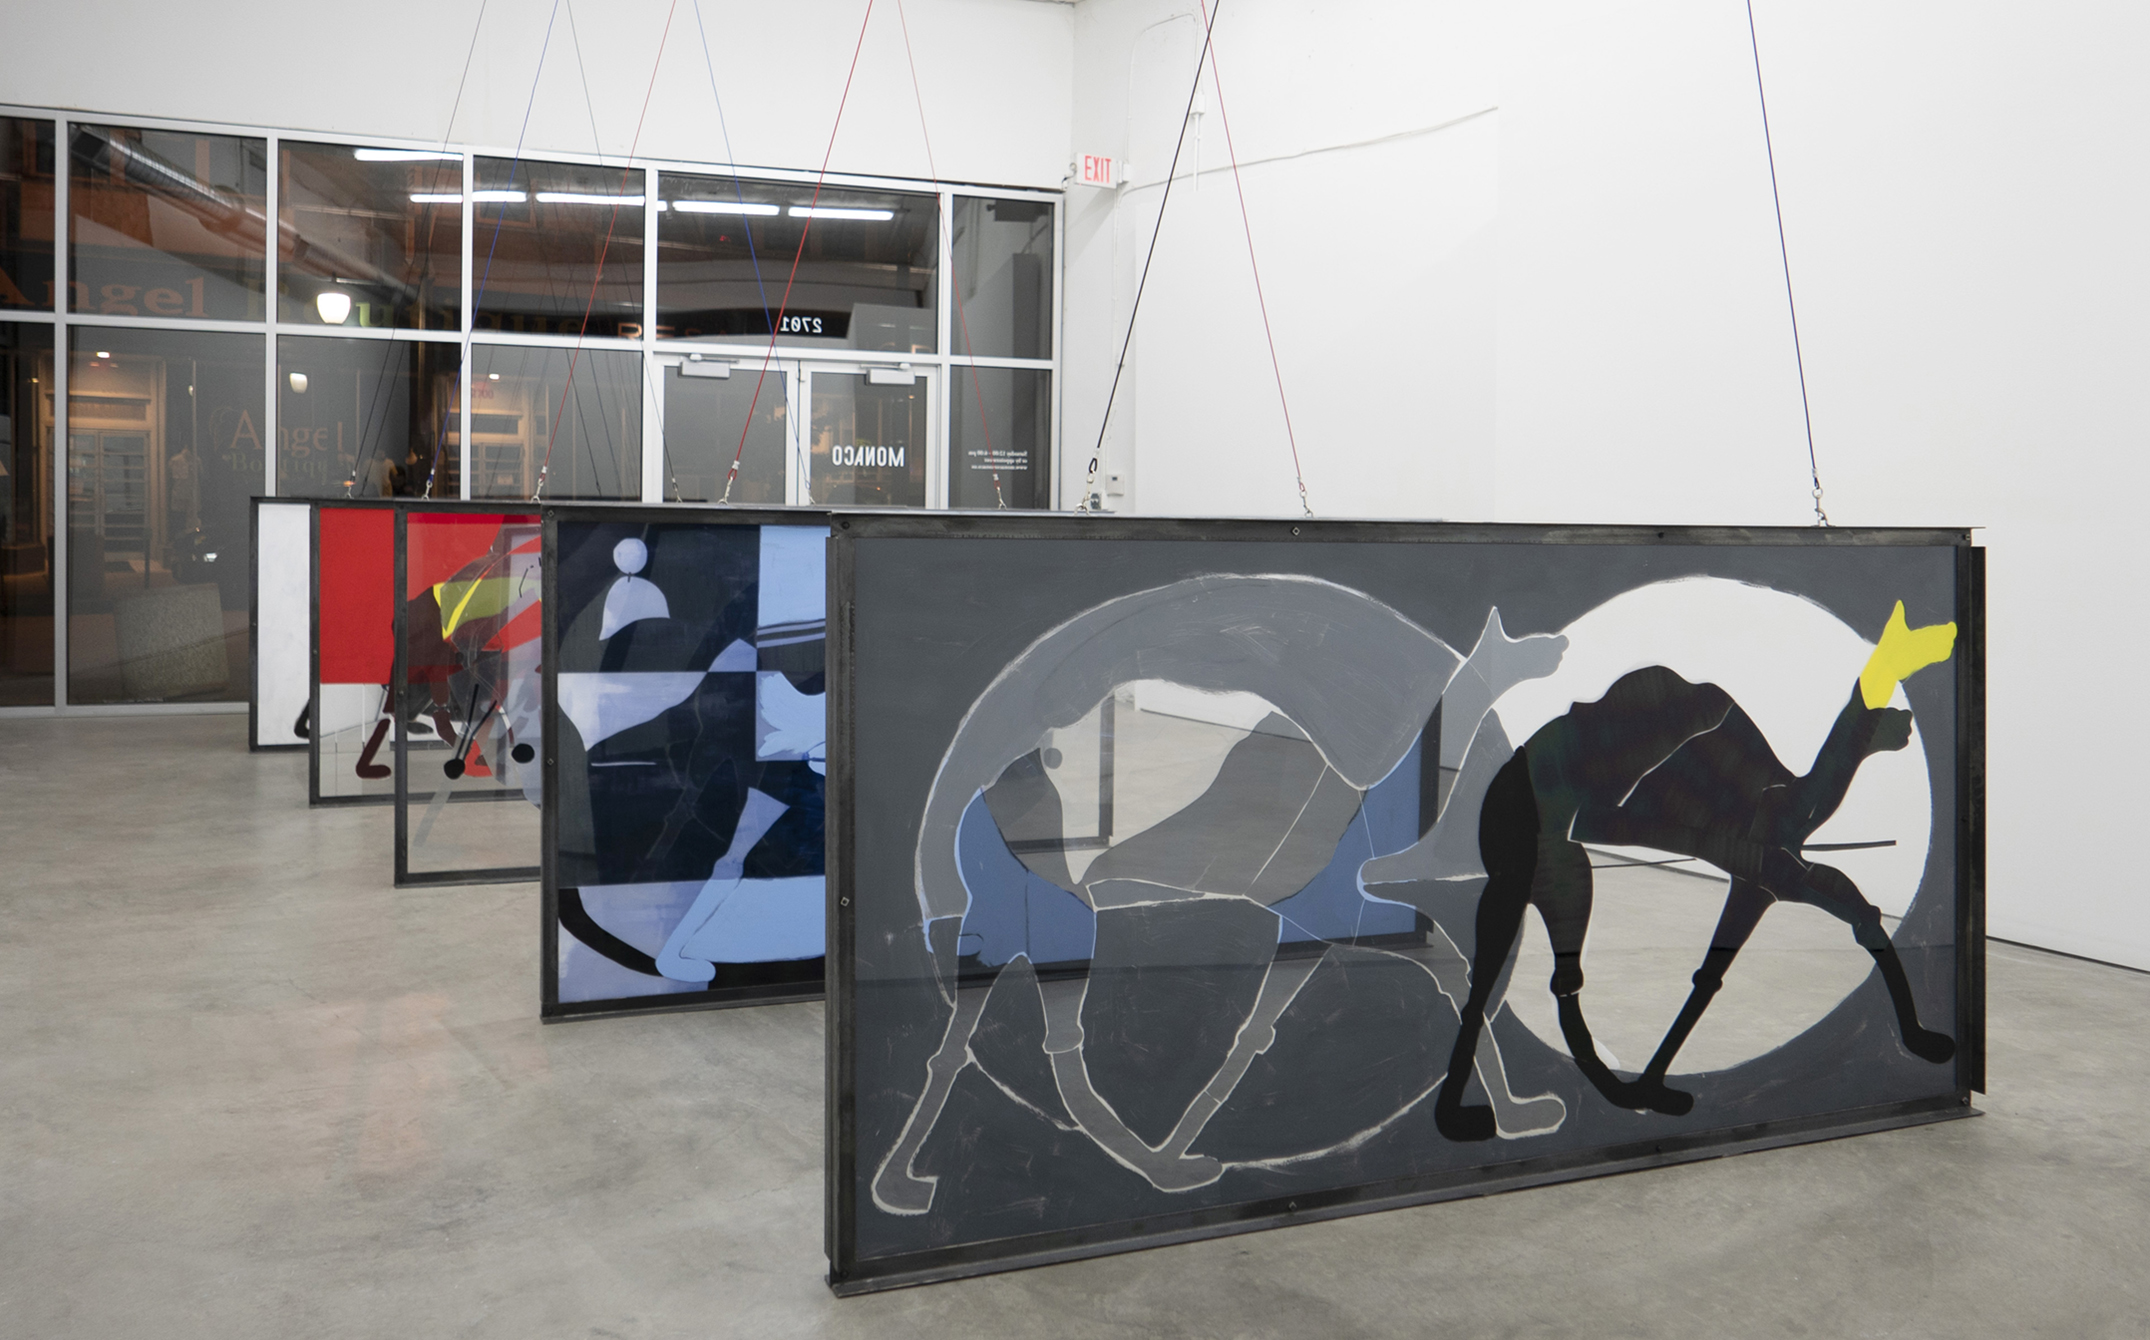 Jenny Gagalka, Camel Race 1 - 5, 2018, flashe paint and window tint film on plexiglas, steel frame, cables, Dimensions: 48 x 96.5 x 3 in